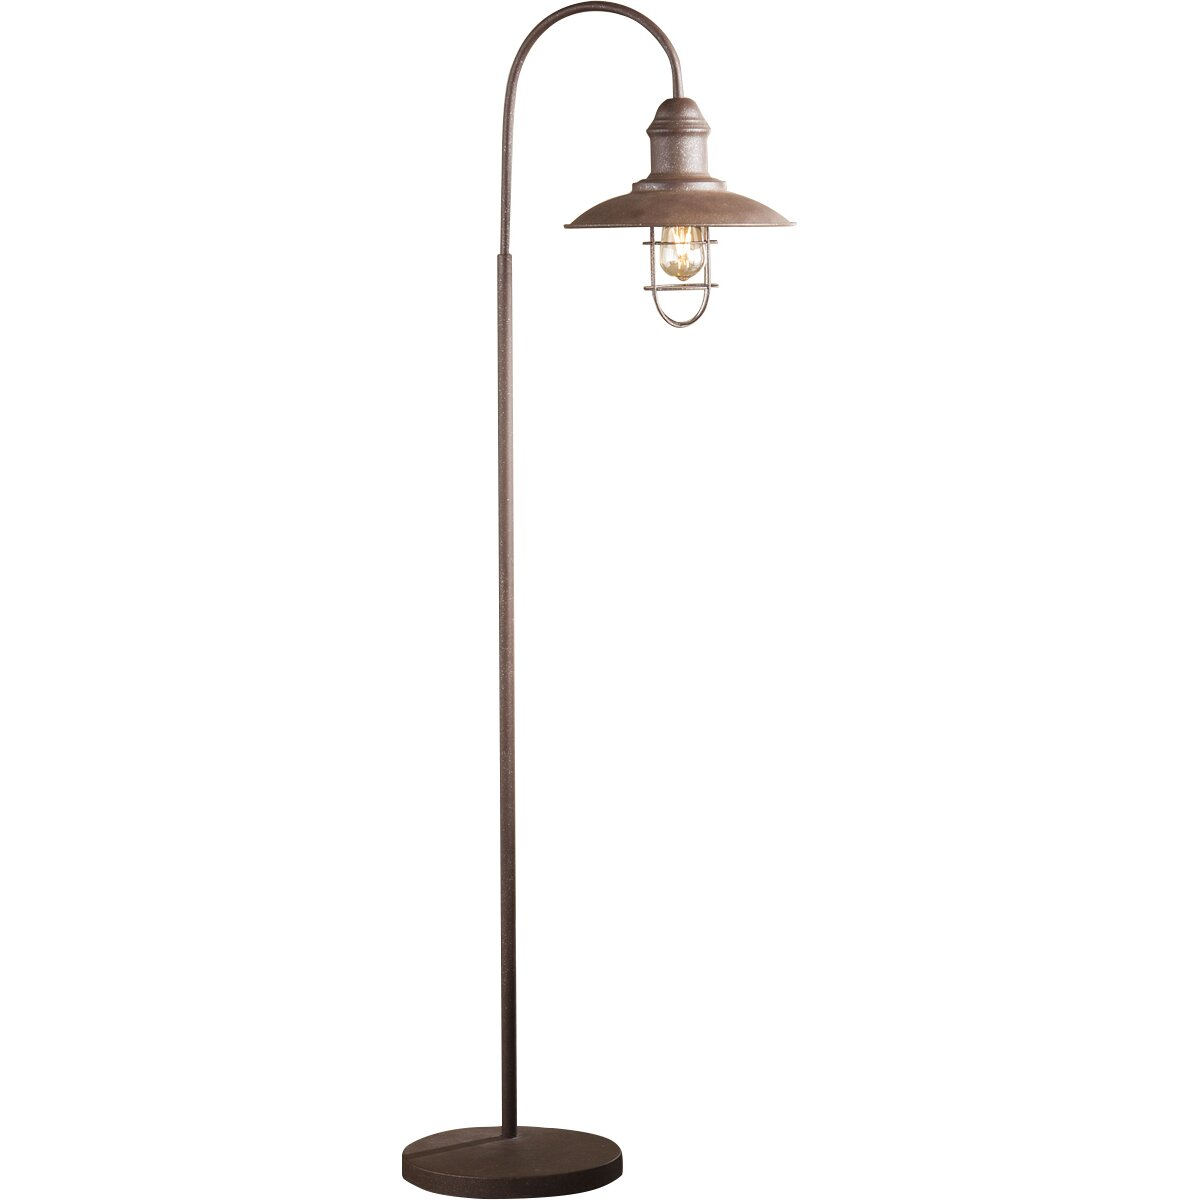 Laurel Foundry Modern Farmhouse Evergreen Caged Bell 63